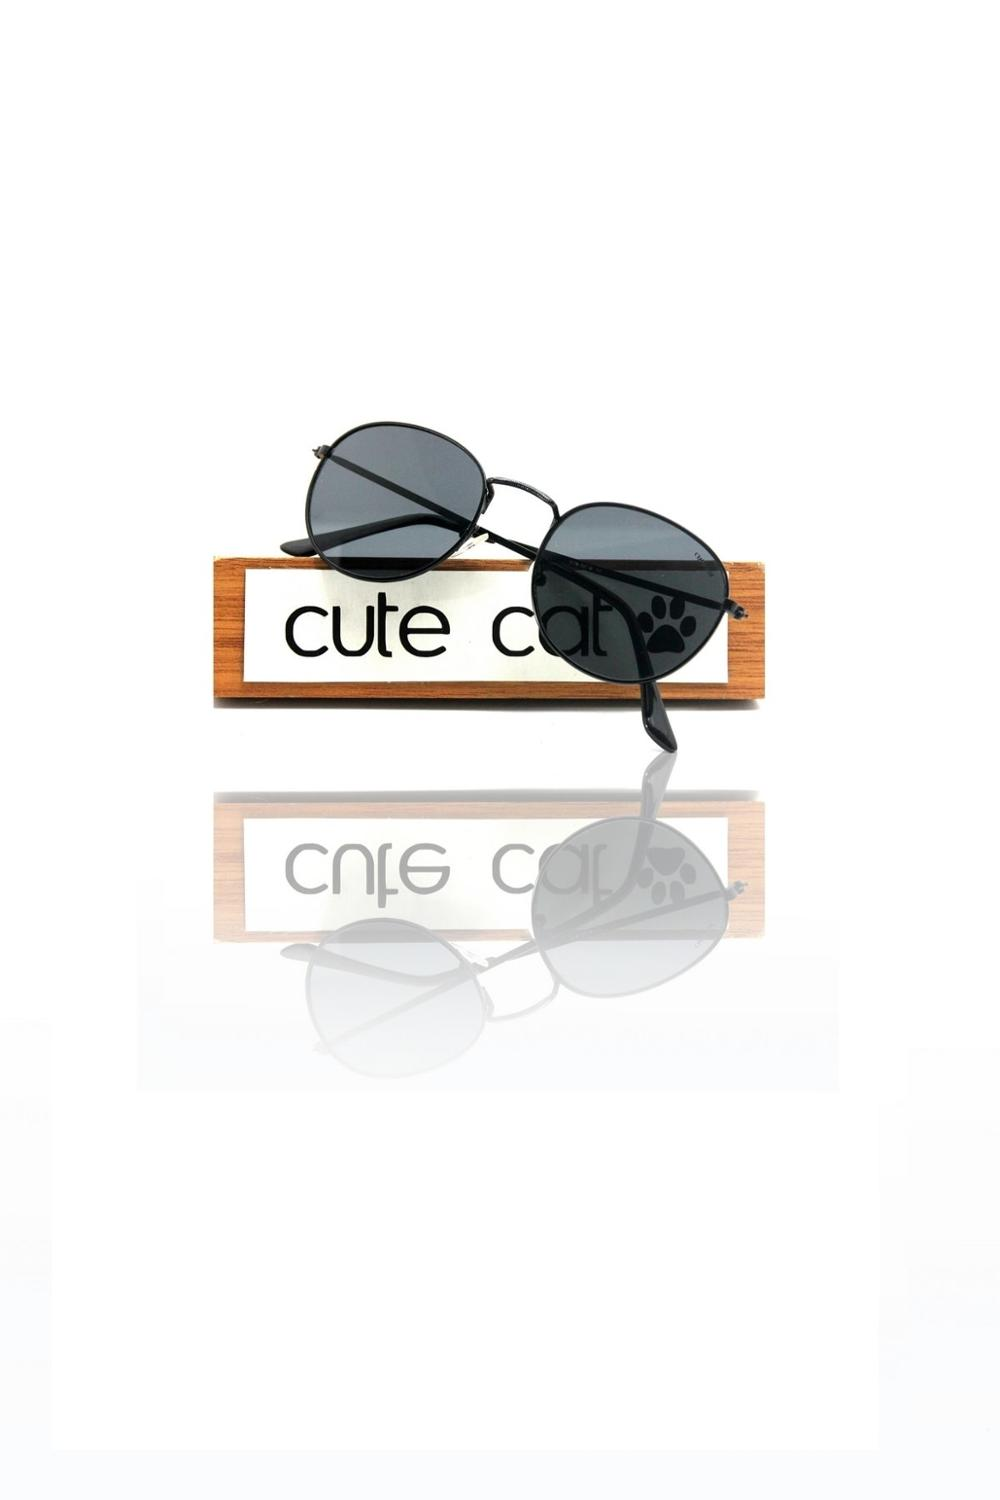 Made In Turkey Cute Cat Flat Round Metal Sunglasses Uv400 Rayban Designed Uv400 Fashion 2020 Sunglasses Rayban Style